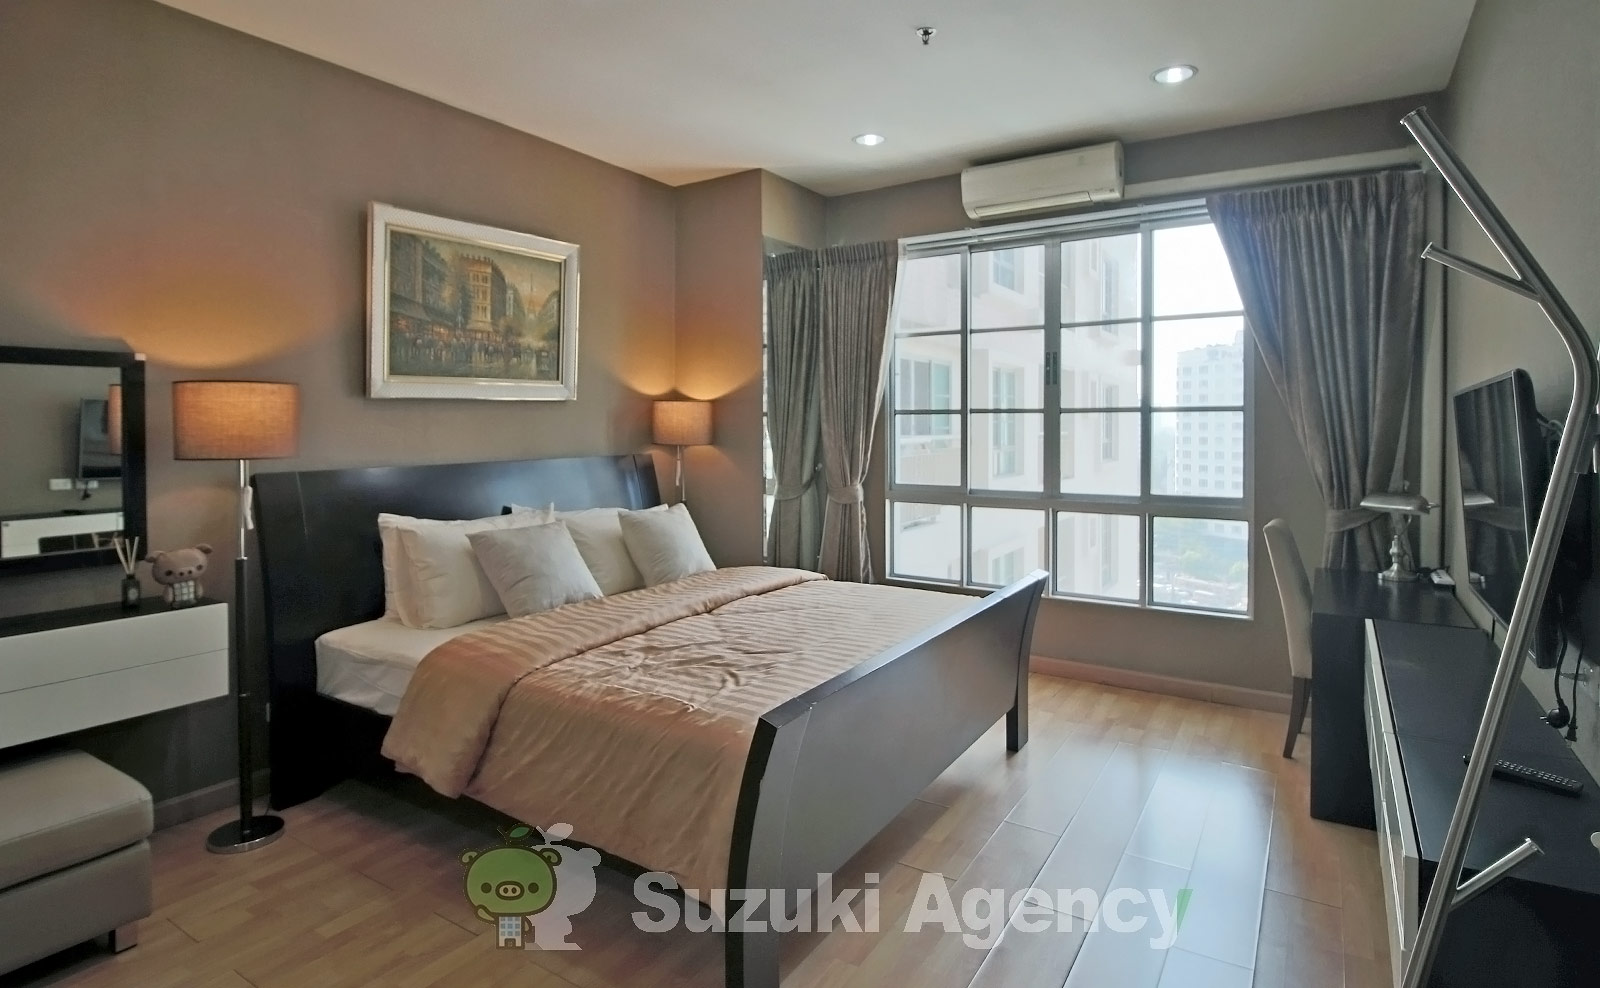 Citi Smart Condo:2Bed Room Photos No.7